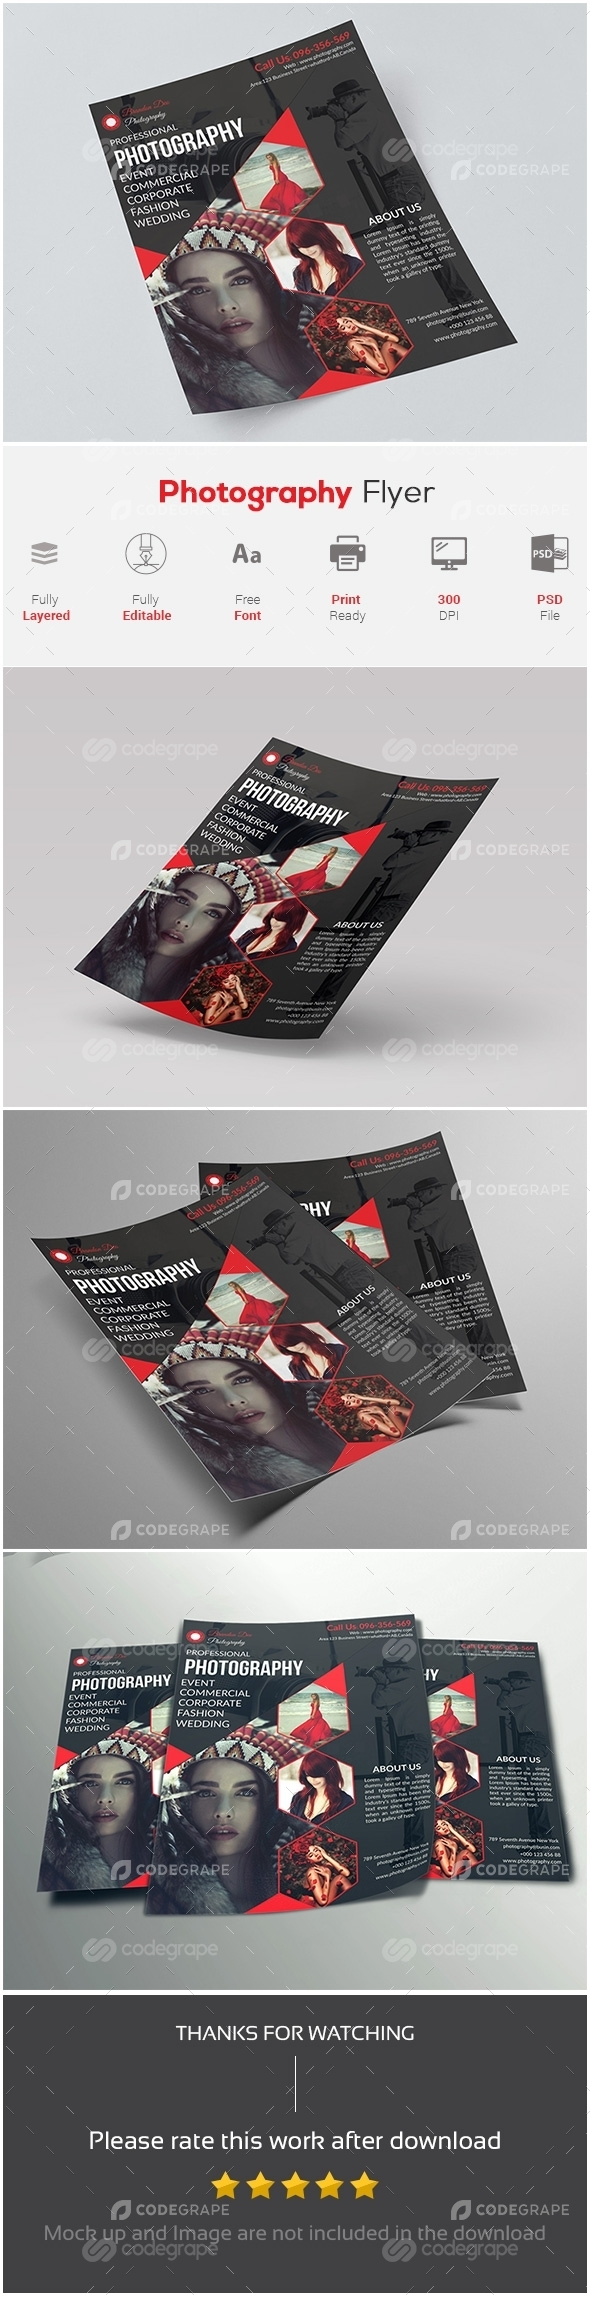 Fashion Photography Flyer Template